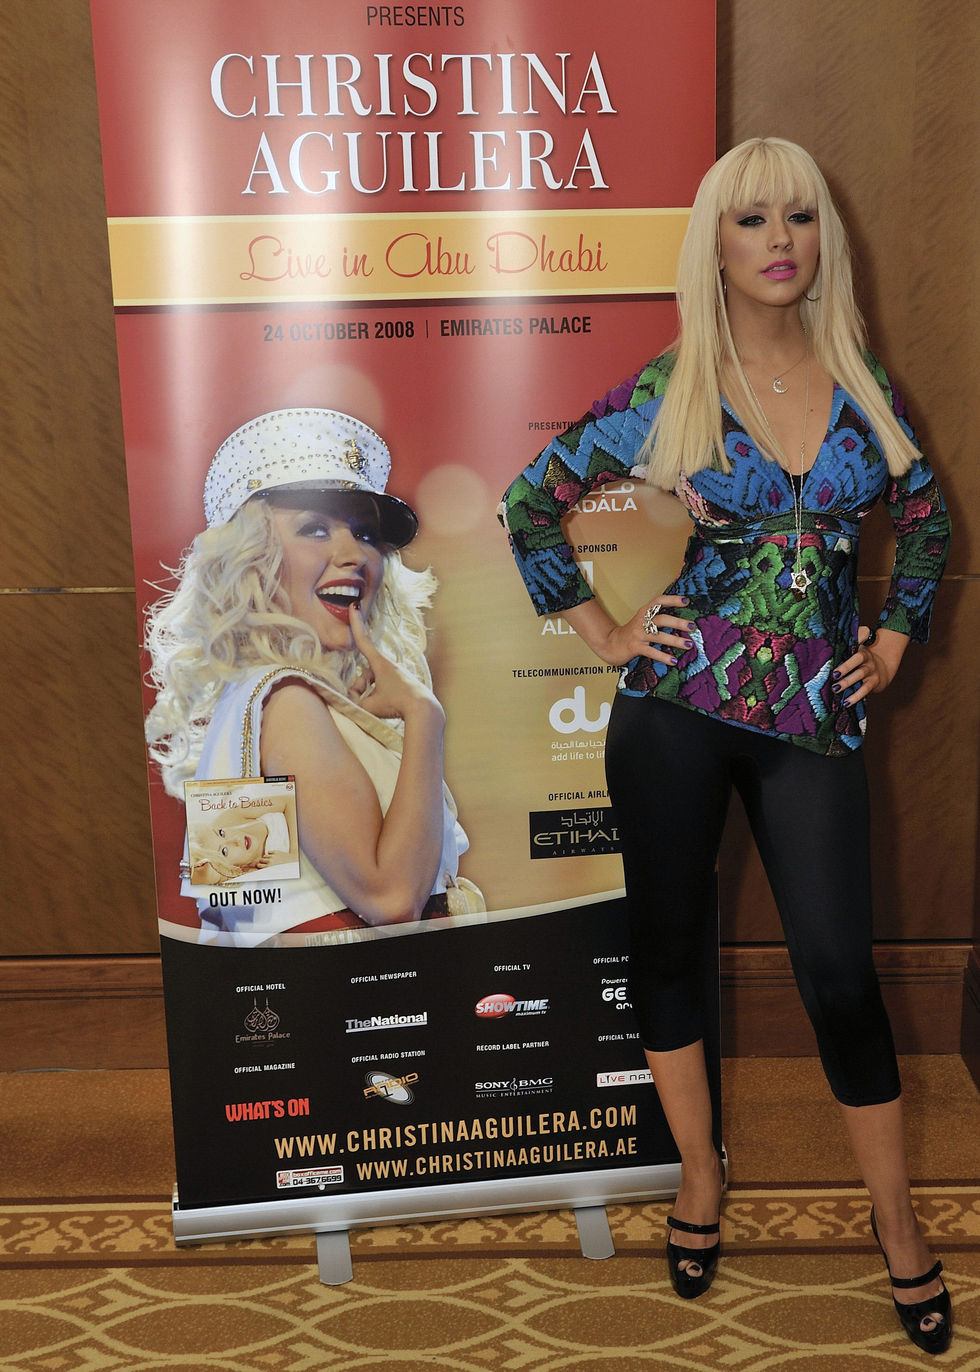 christina-aguilera-at-press-conference-in-abu-dhabi-01